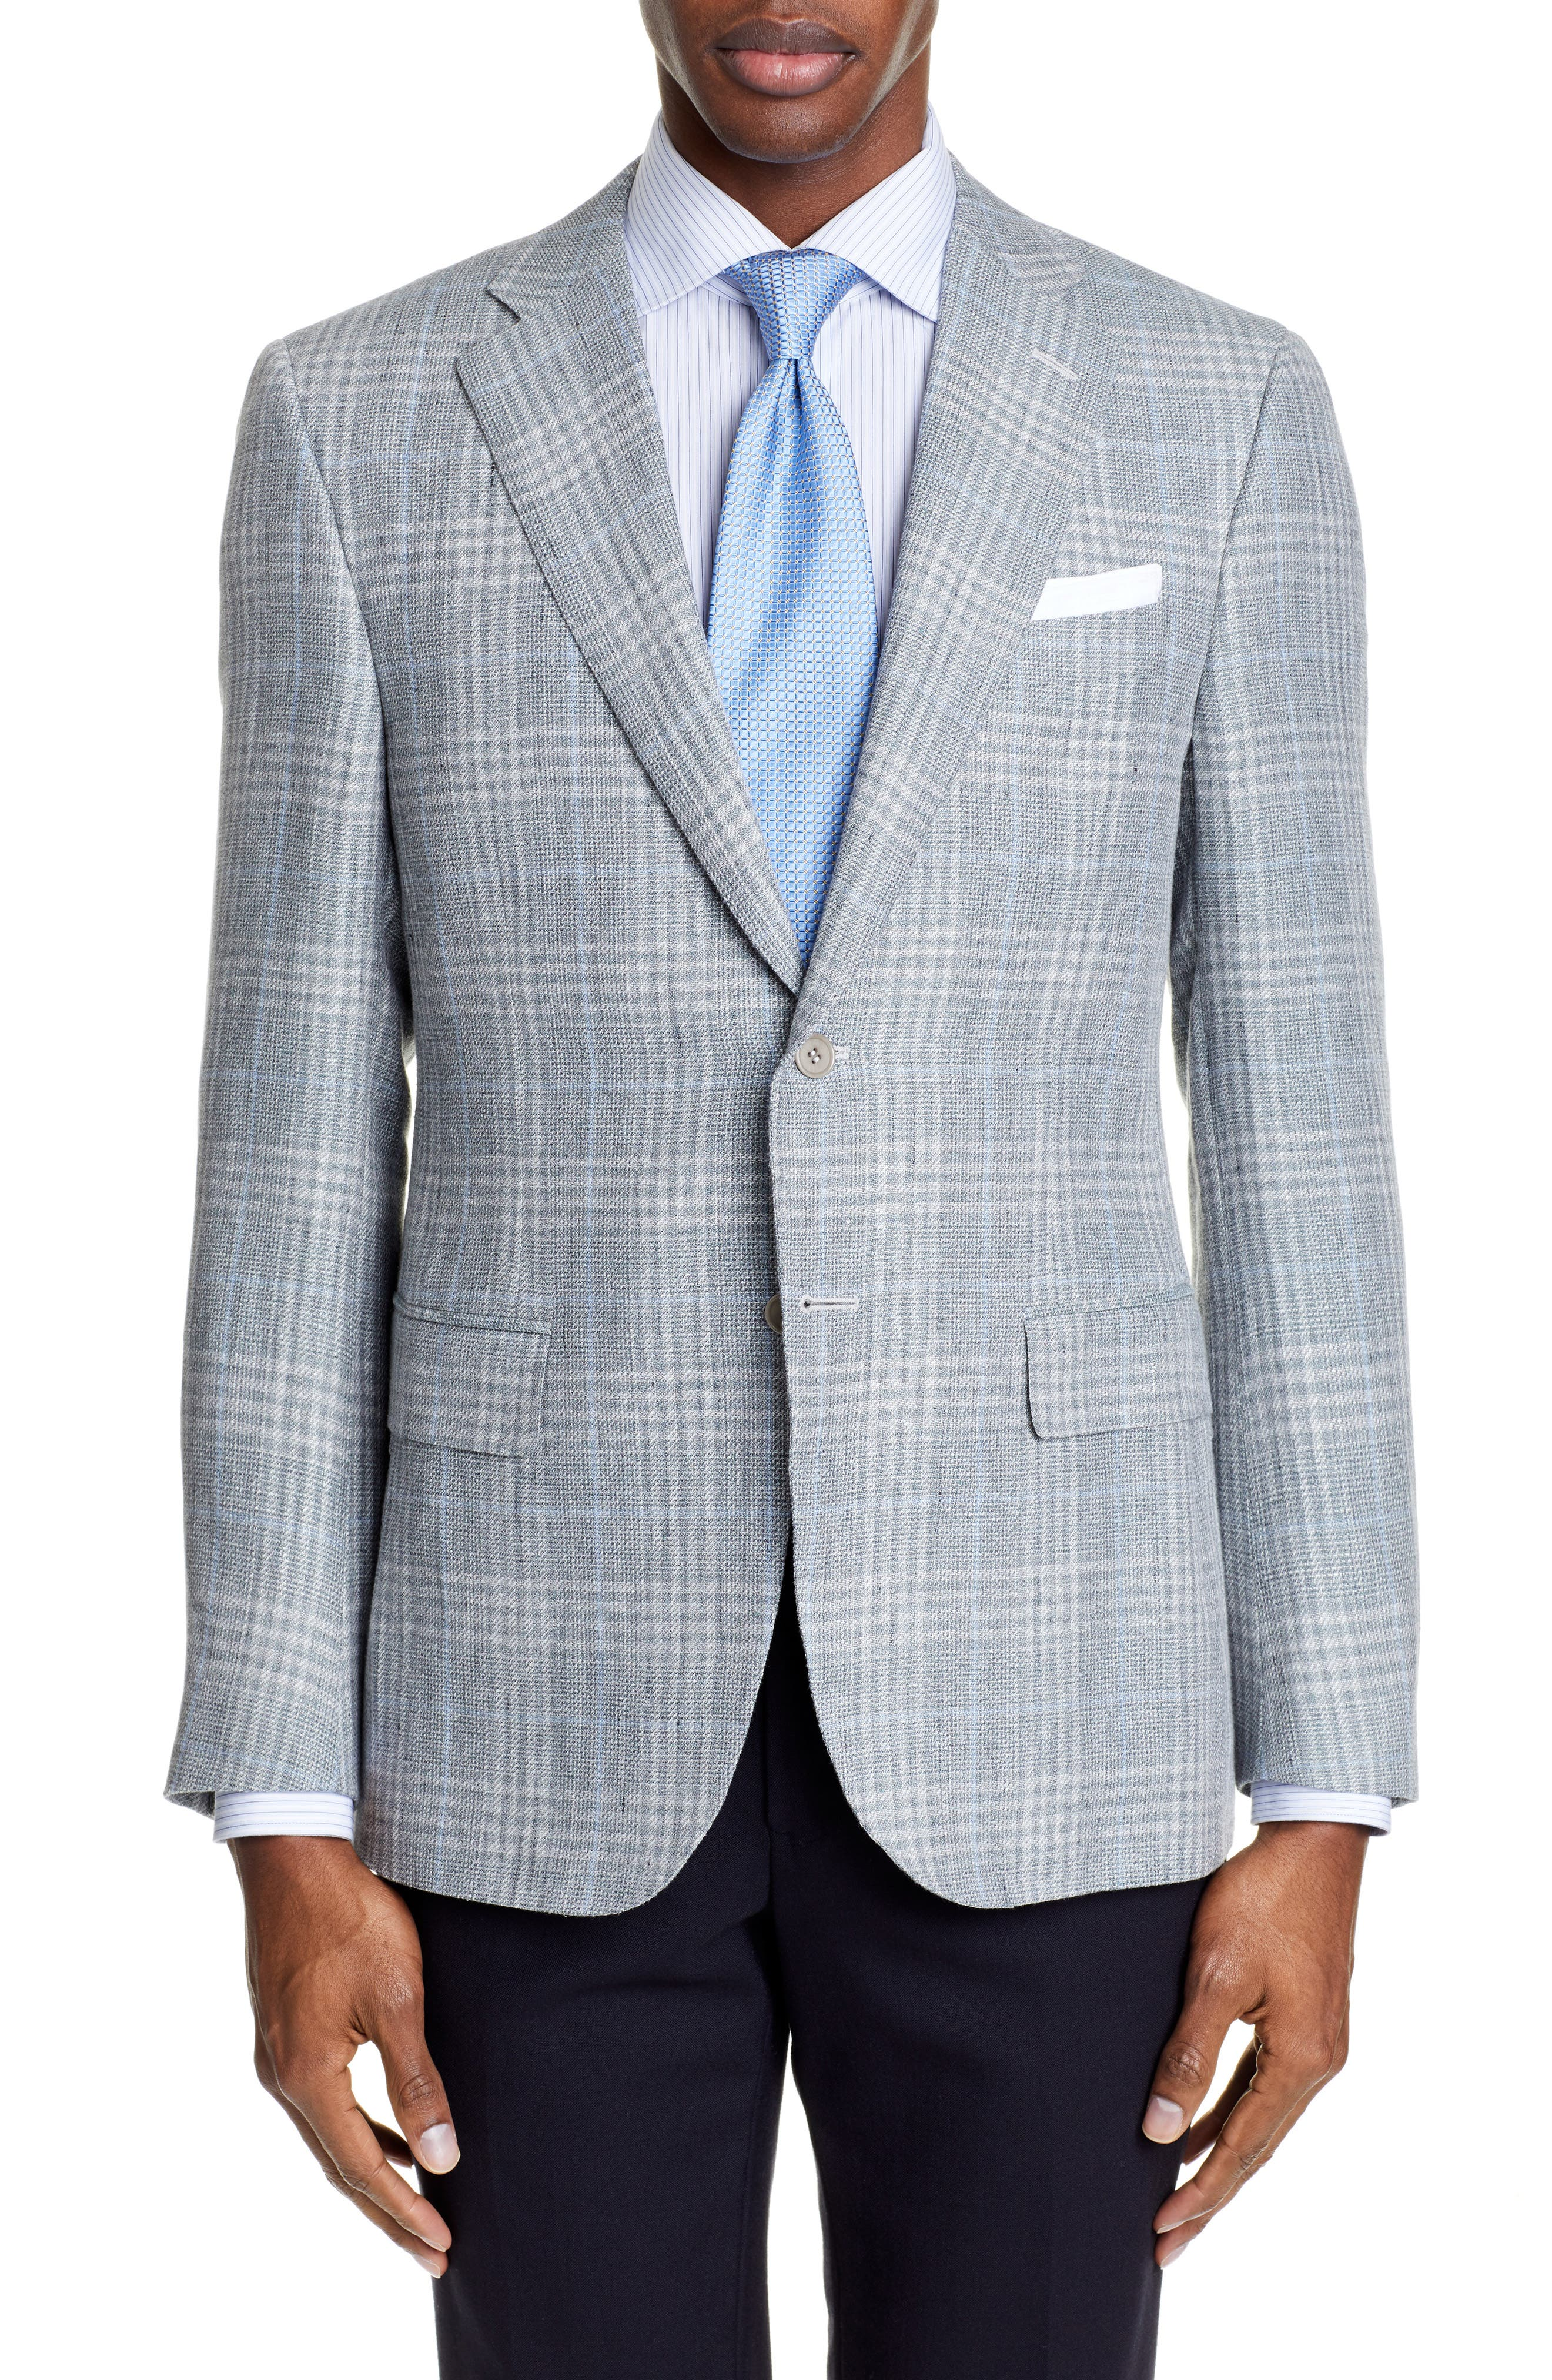 CANALI, Sienna Classic Fit Plaid Linen & Wool Sport Coat, Main thumbnail 1, color, LIGHT GREEN